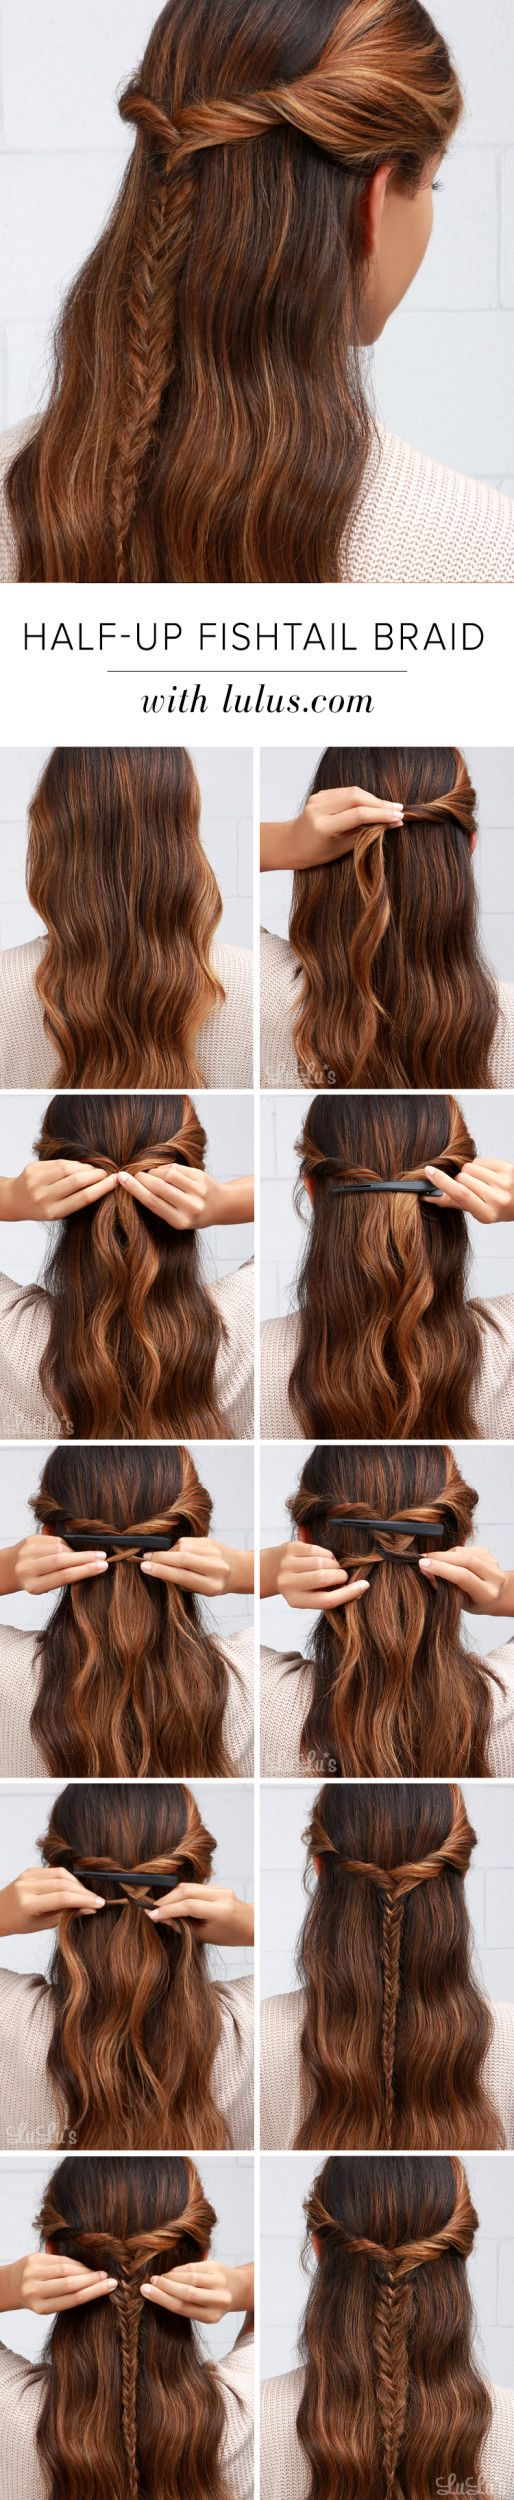 11 Quick And Easy Ways To Style Your Hair In Less Than 2 Minutes The Right Tips For Your Busy Mornings Long Hair Styles Hair Styles Hairstyle